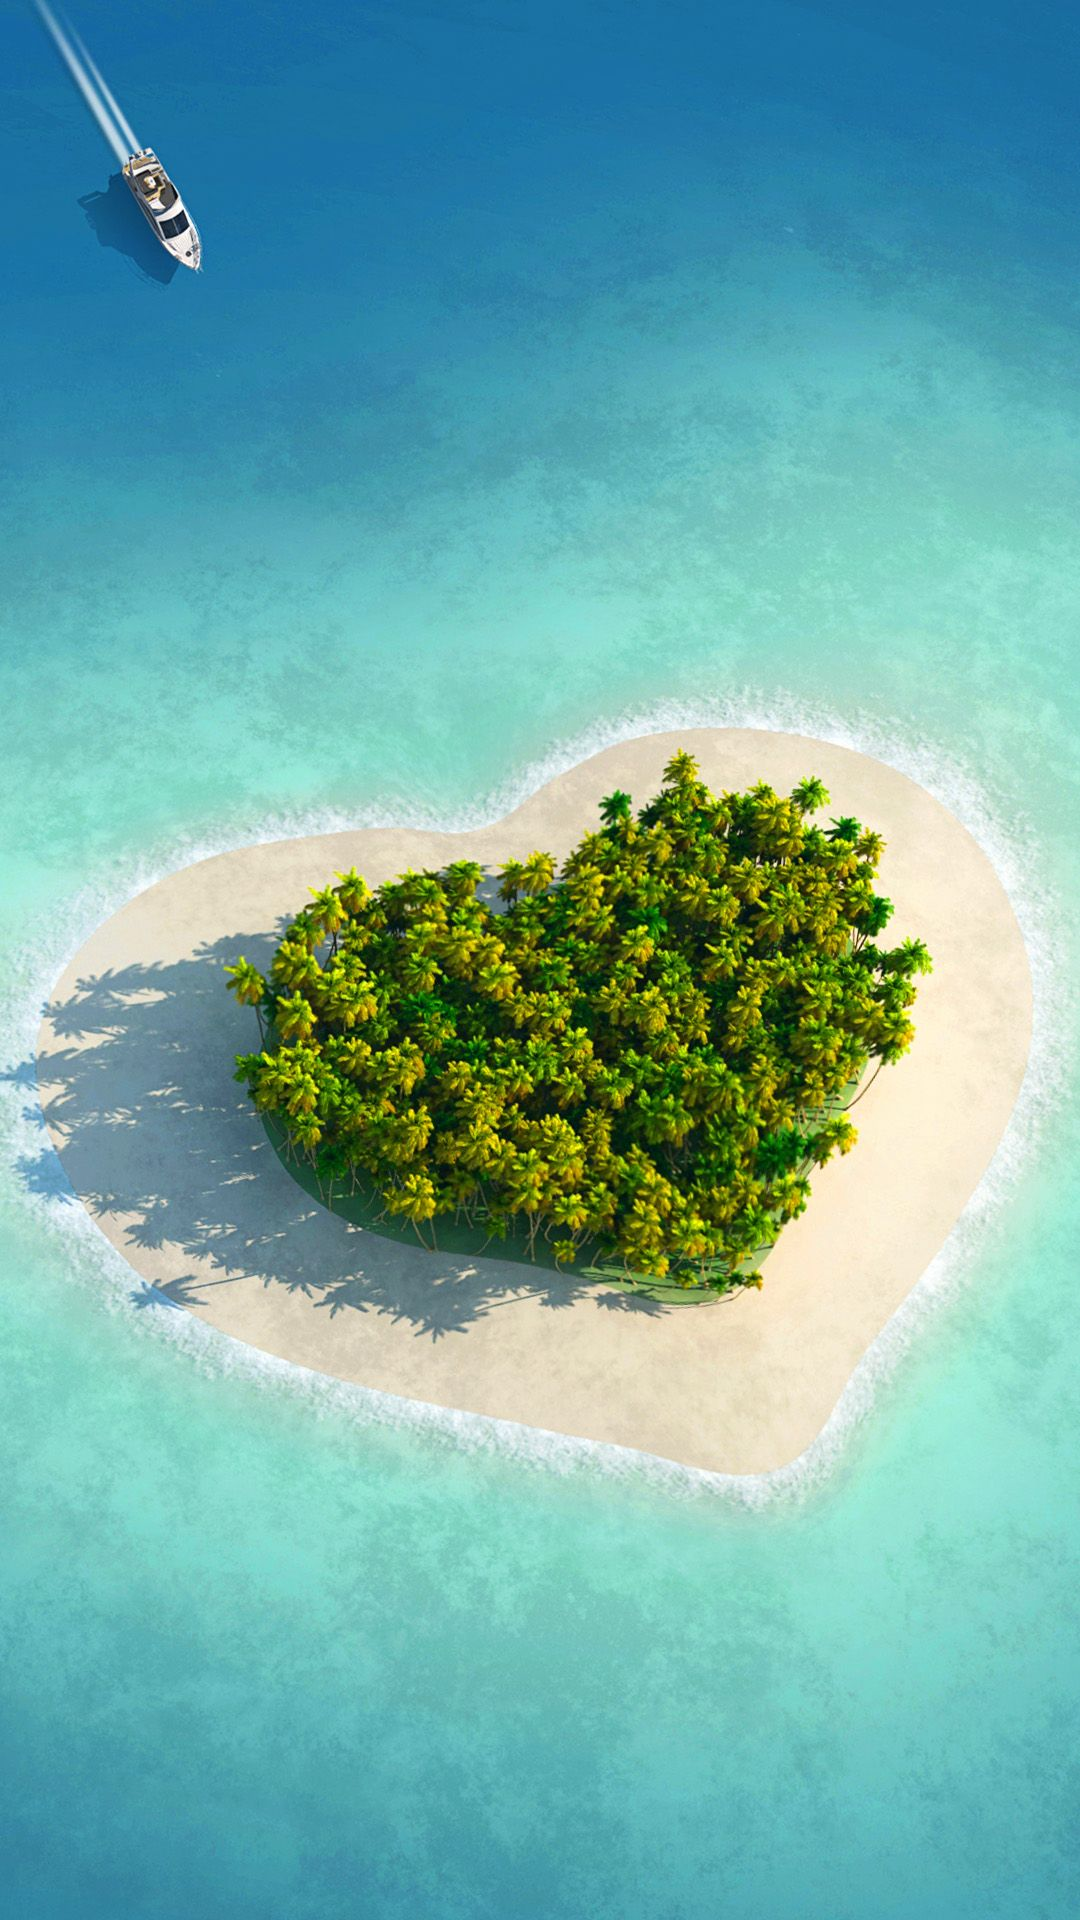 ↑↑tap and get the free app! art creative island love heart nature